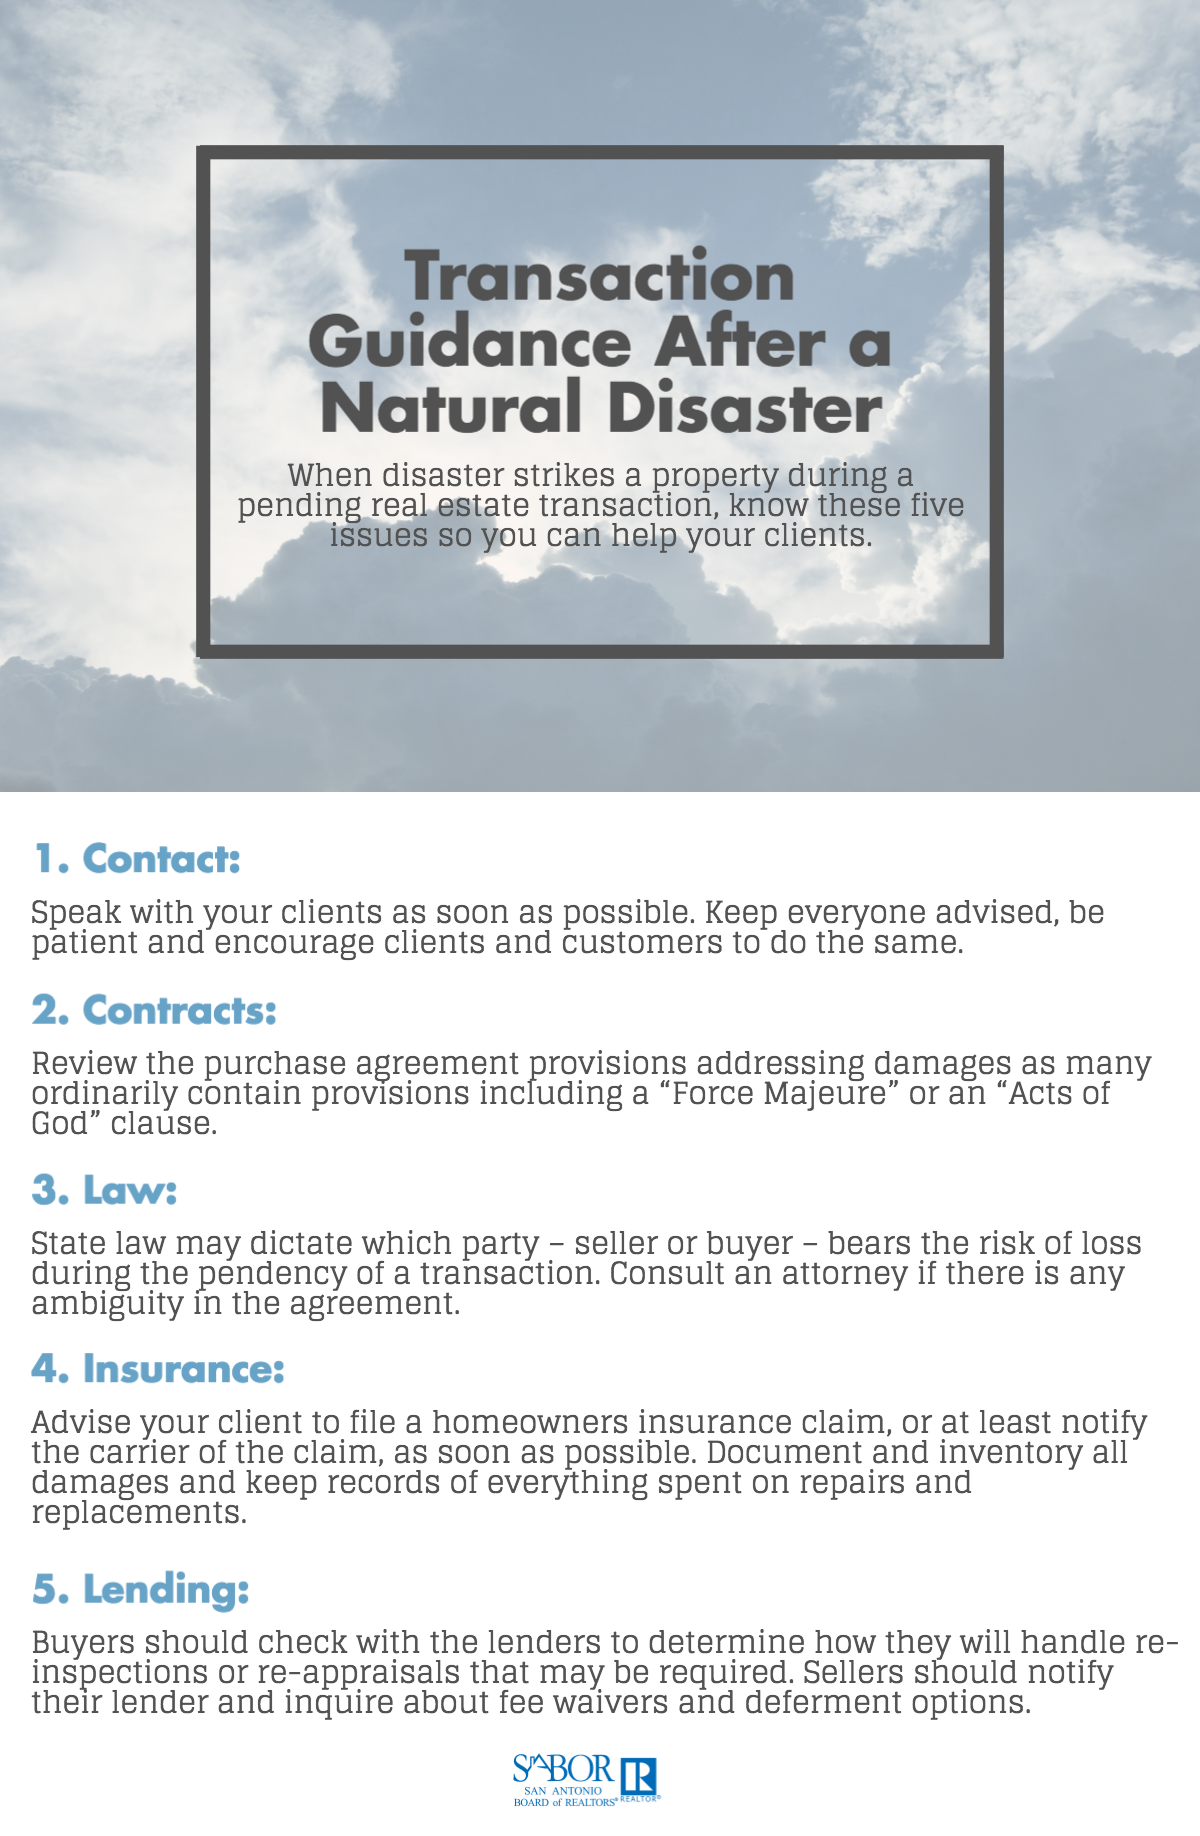 When Disaster Strikes A Property During A Pending Real Estate Transaction Know These Five Issues So You Can Help Your Natural Disasters Disasters Infographic